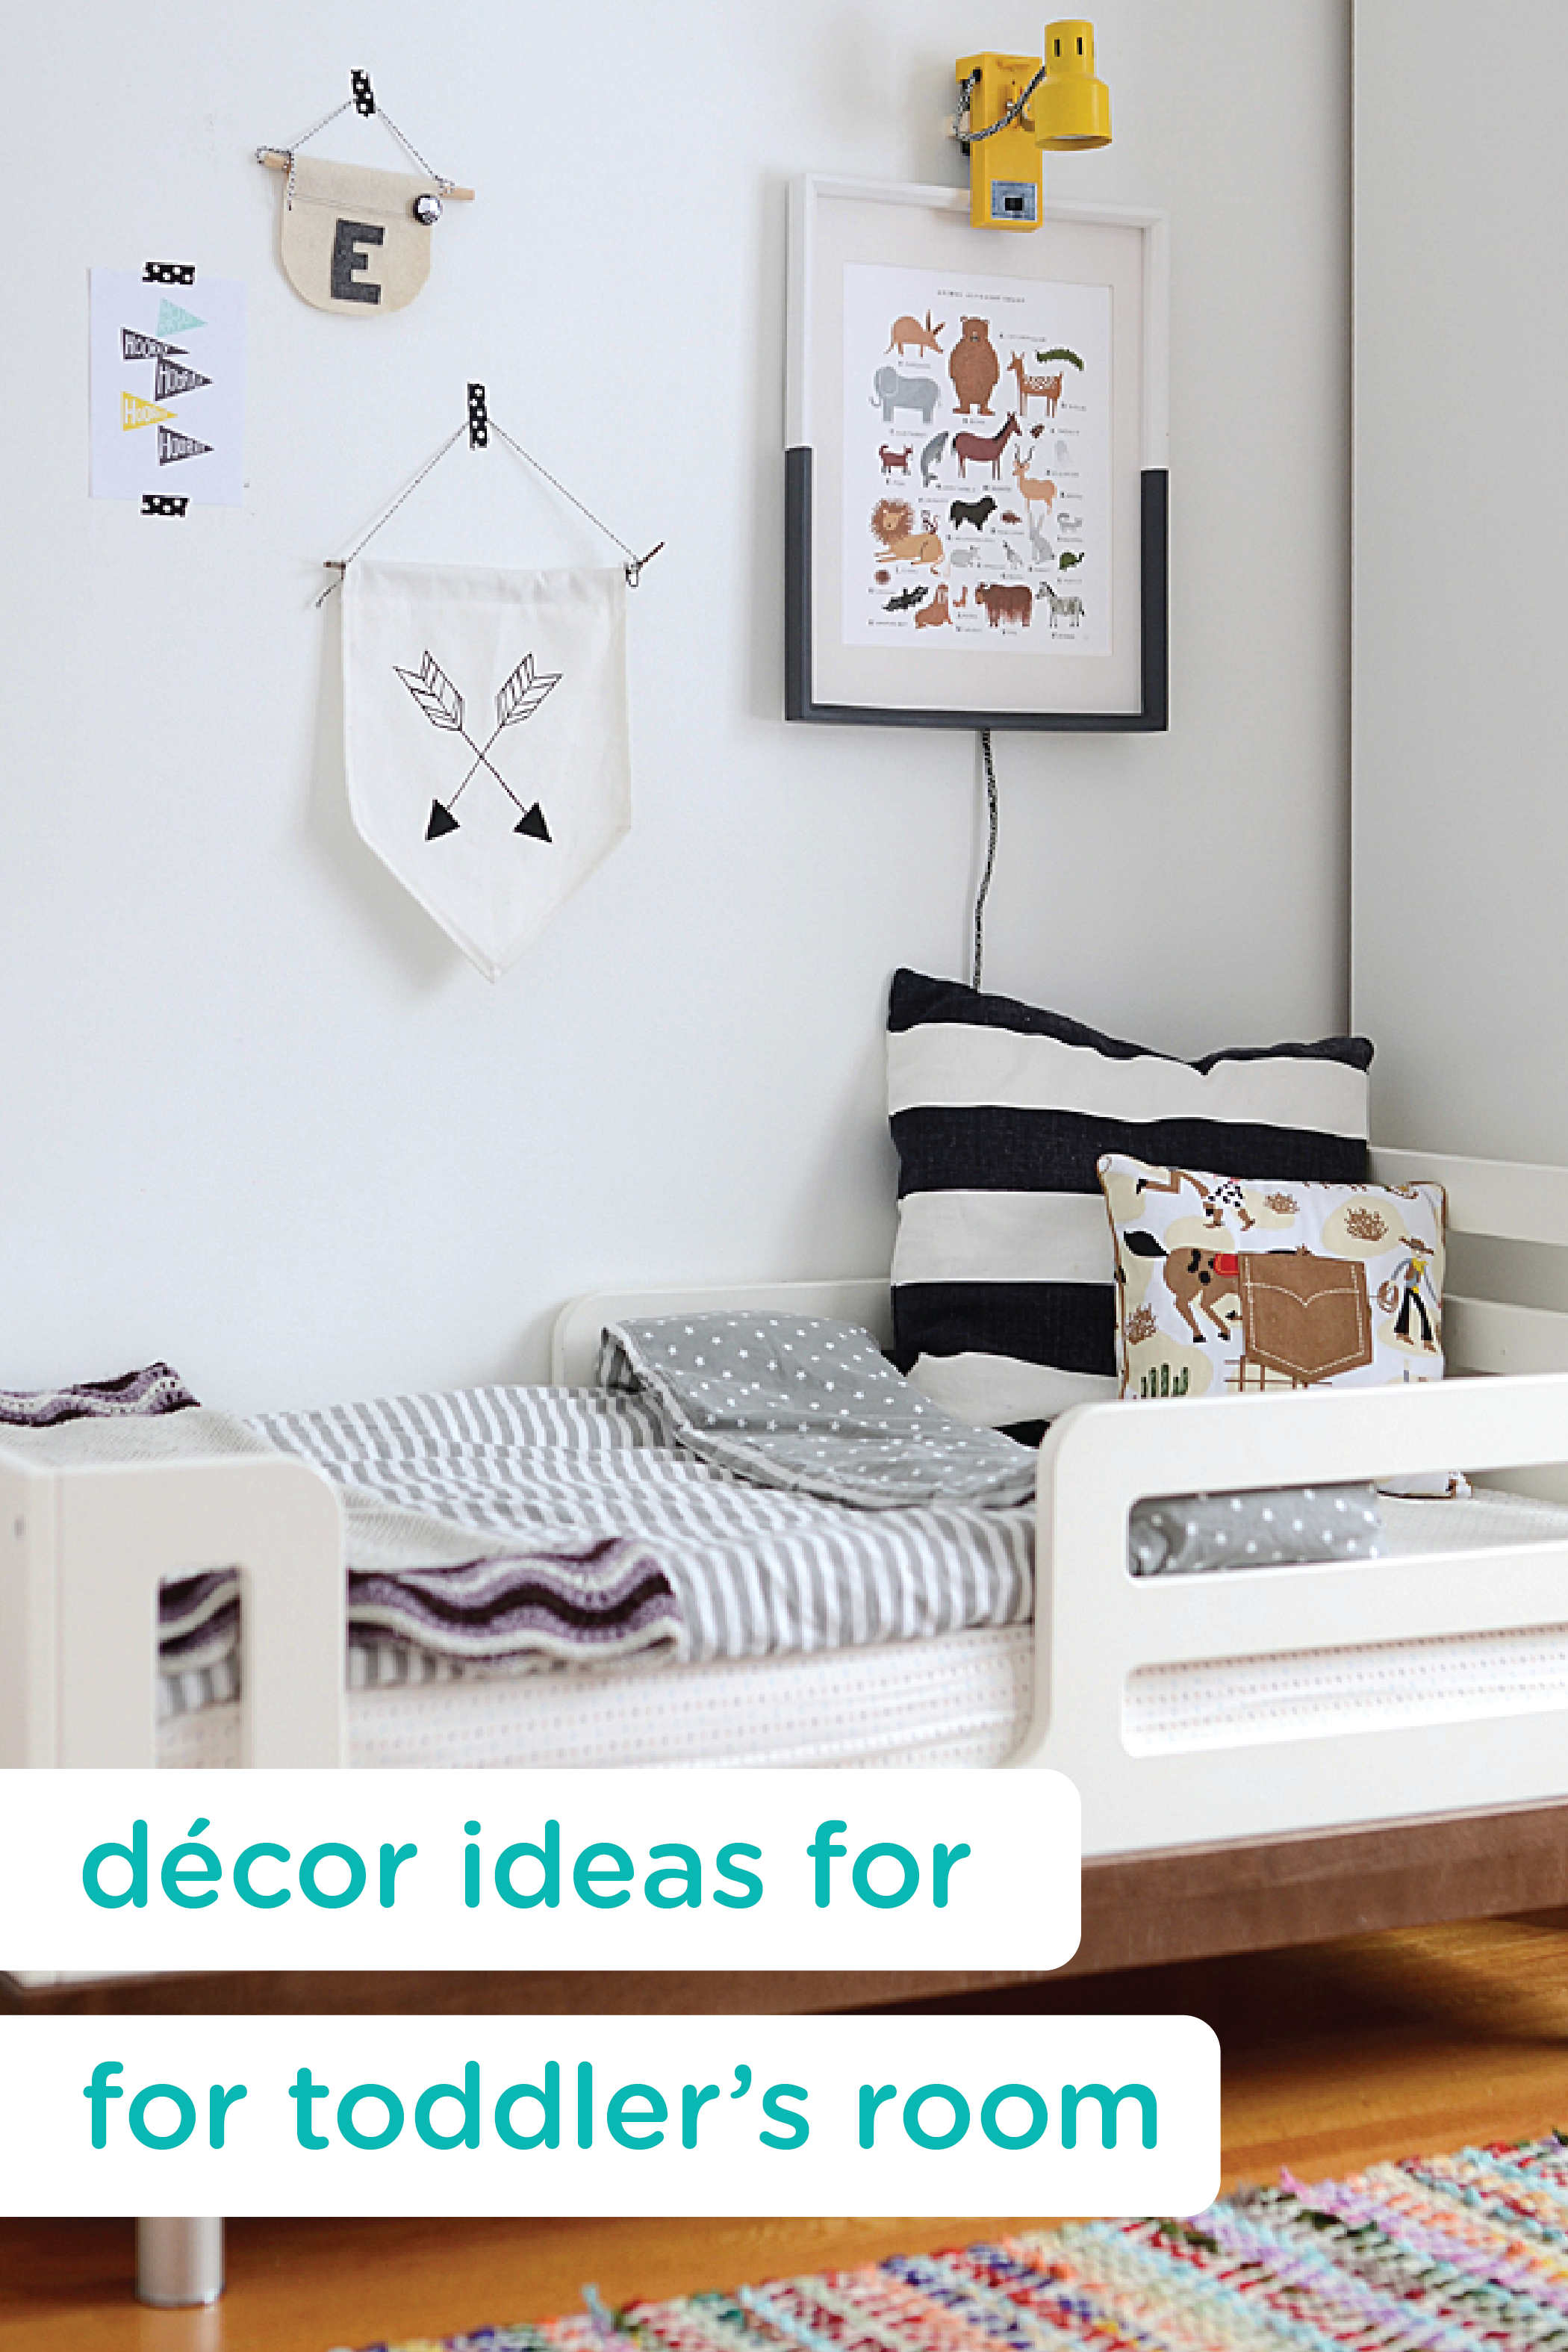 These Simple Wall Art Ideas Are The Perfect Children S Room Accessory With The Help Of This Diy Painted Dipped Frame You Can Ad Kids Room Kid Room Style Room